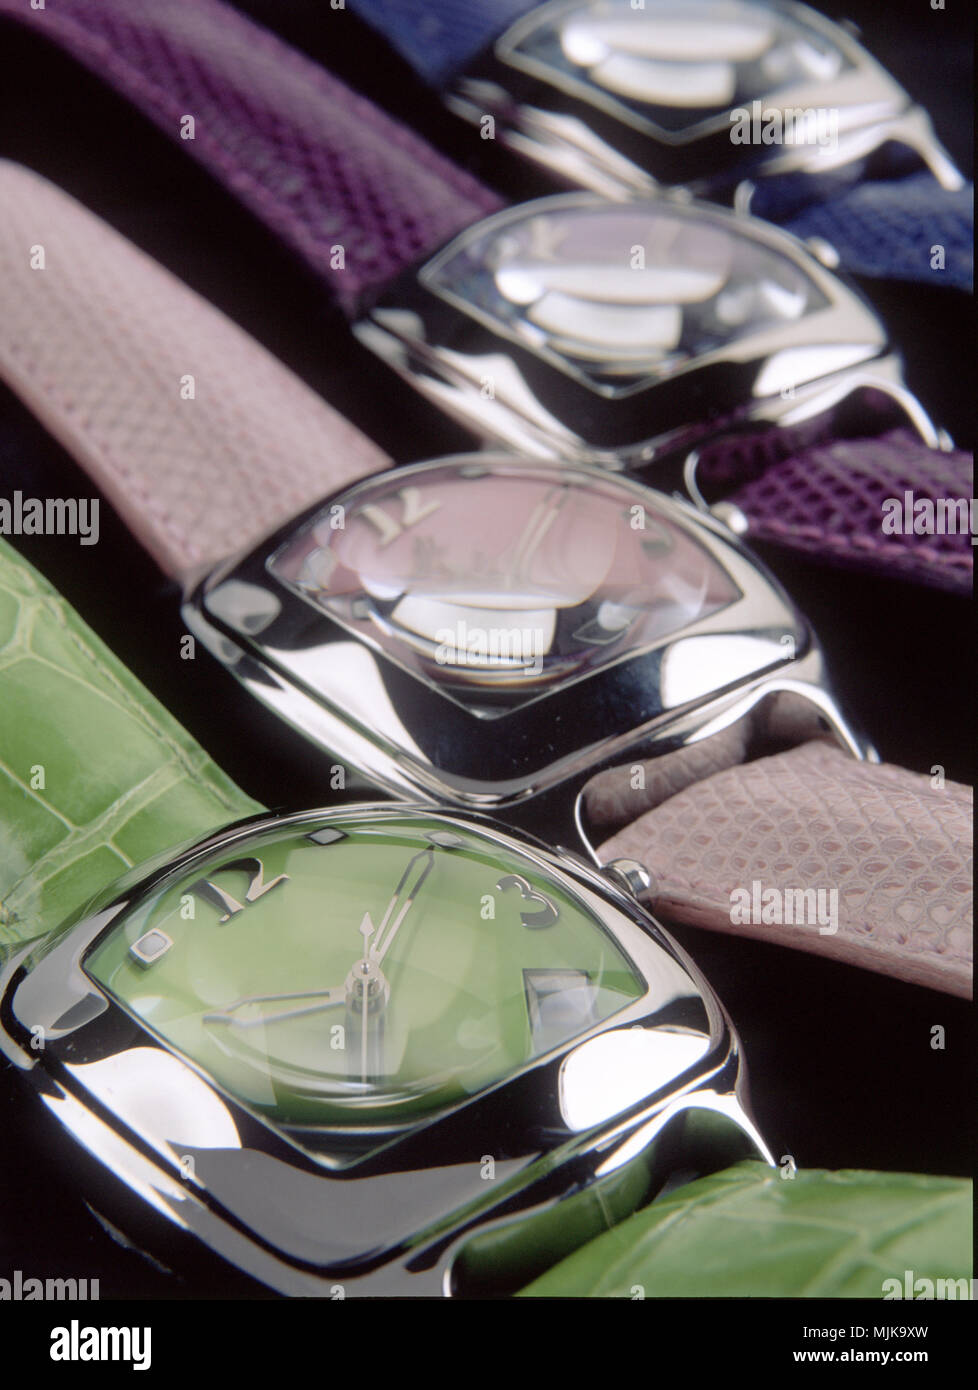 Closeup of set of colorful wristwatches on black background - Stock Image